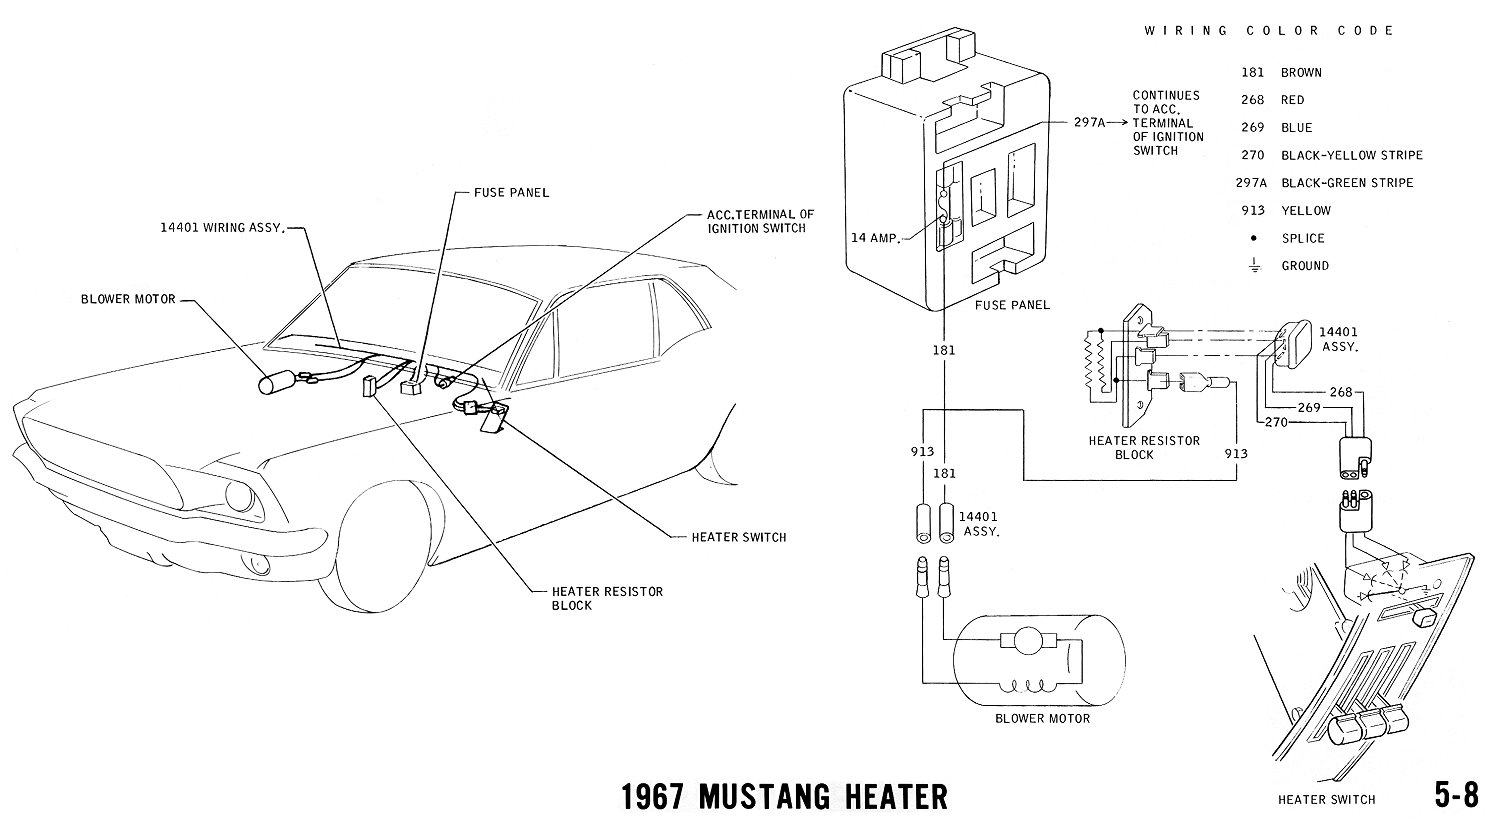 67 mustang engine diagram html imageresizertool com 67 Mustang Engine Wiring 67 Mustang Alternator Wiring Diagram